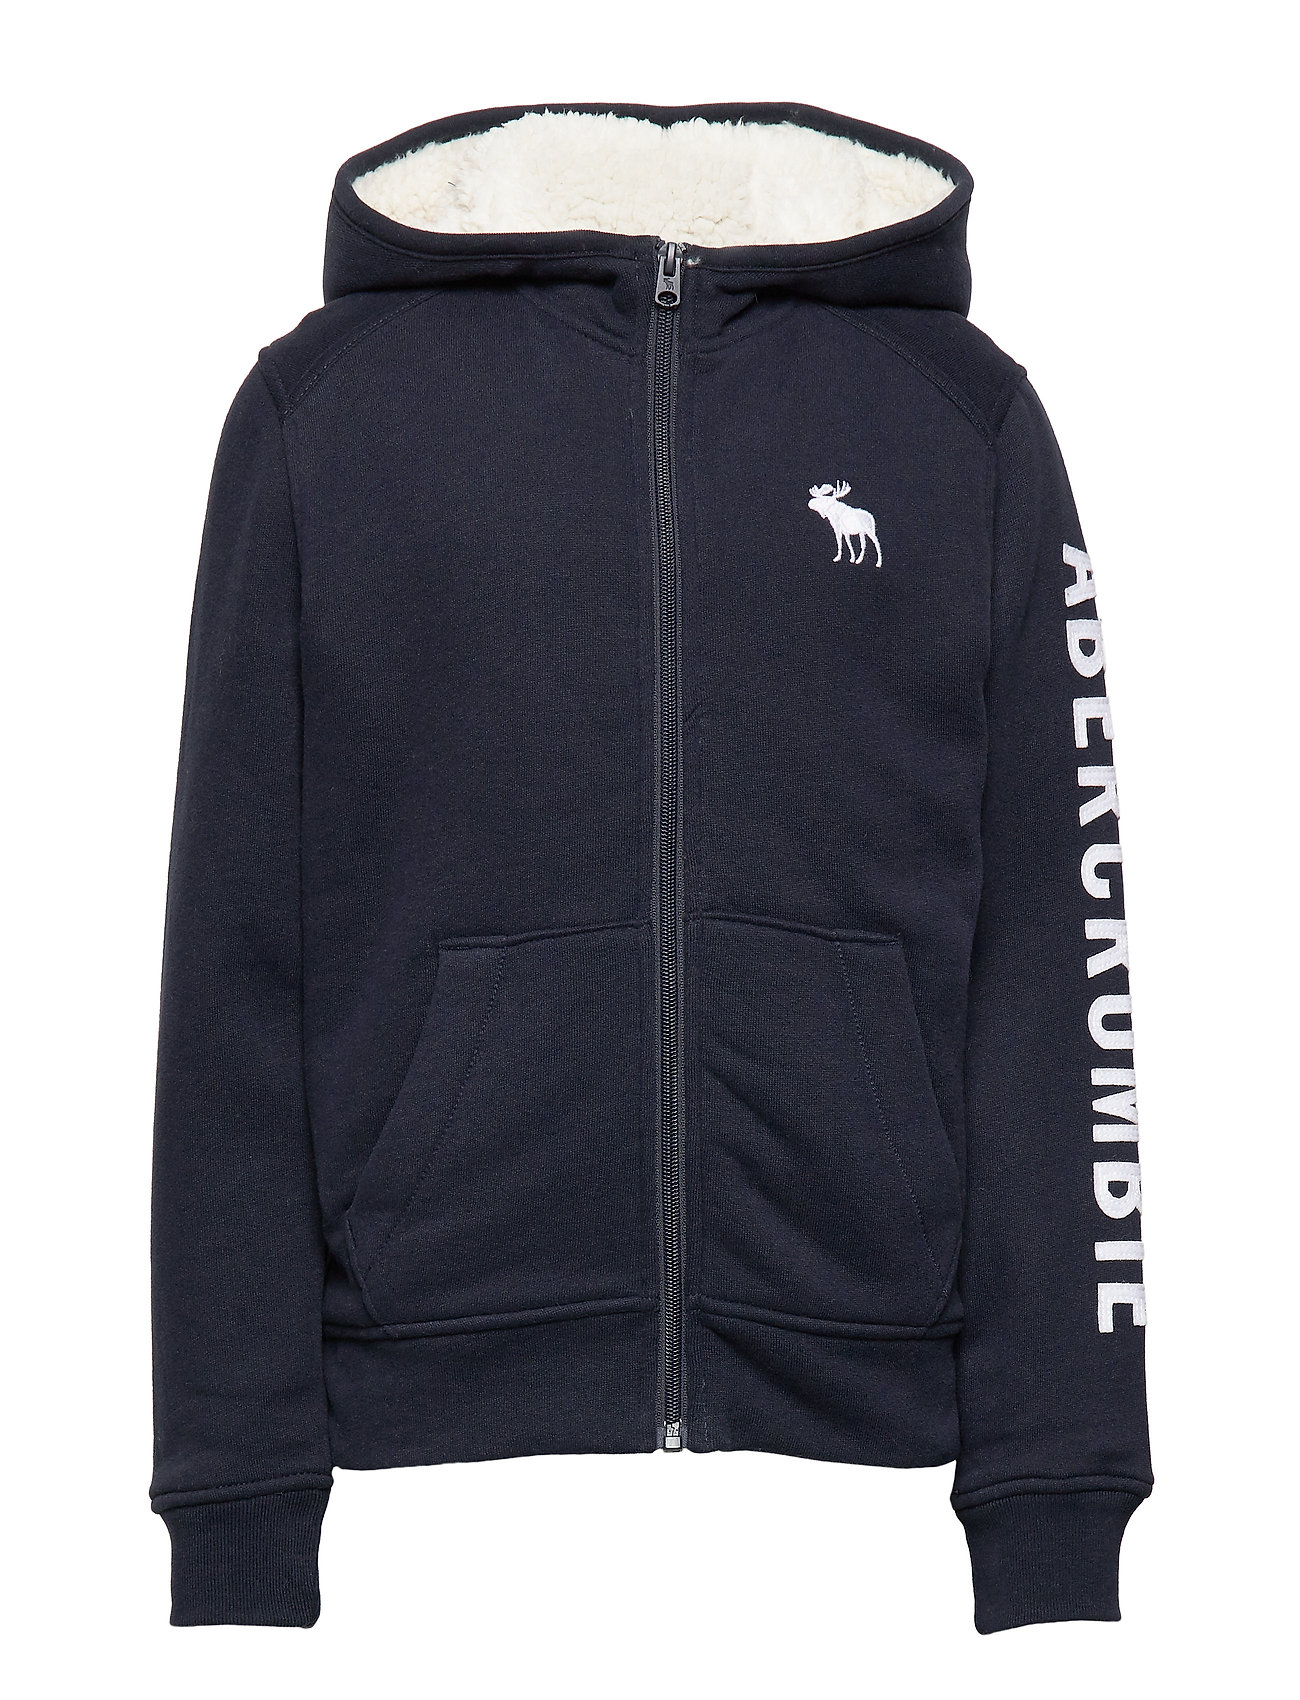 Abercrombie & Fitch Sherpa - NAVY